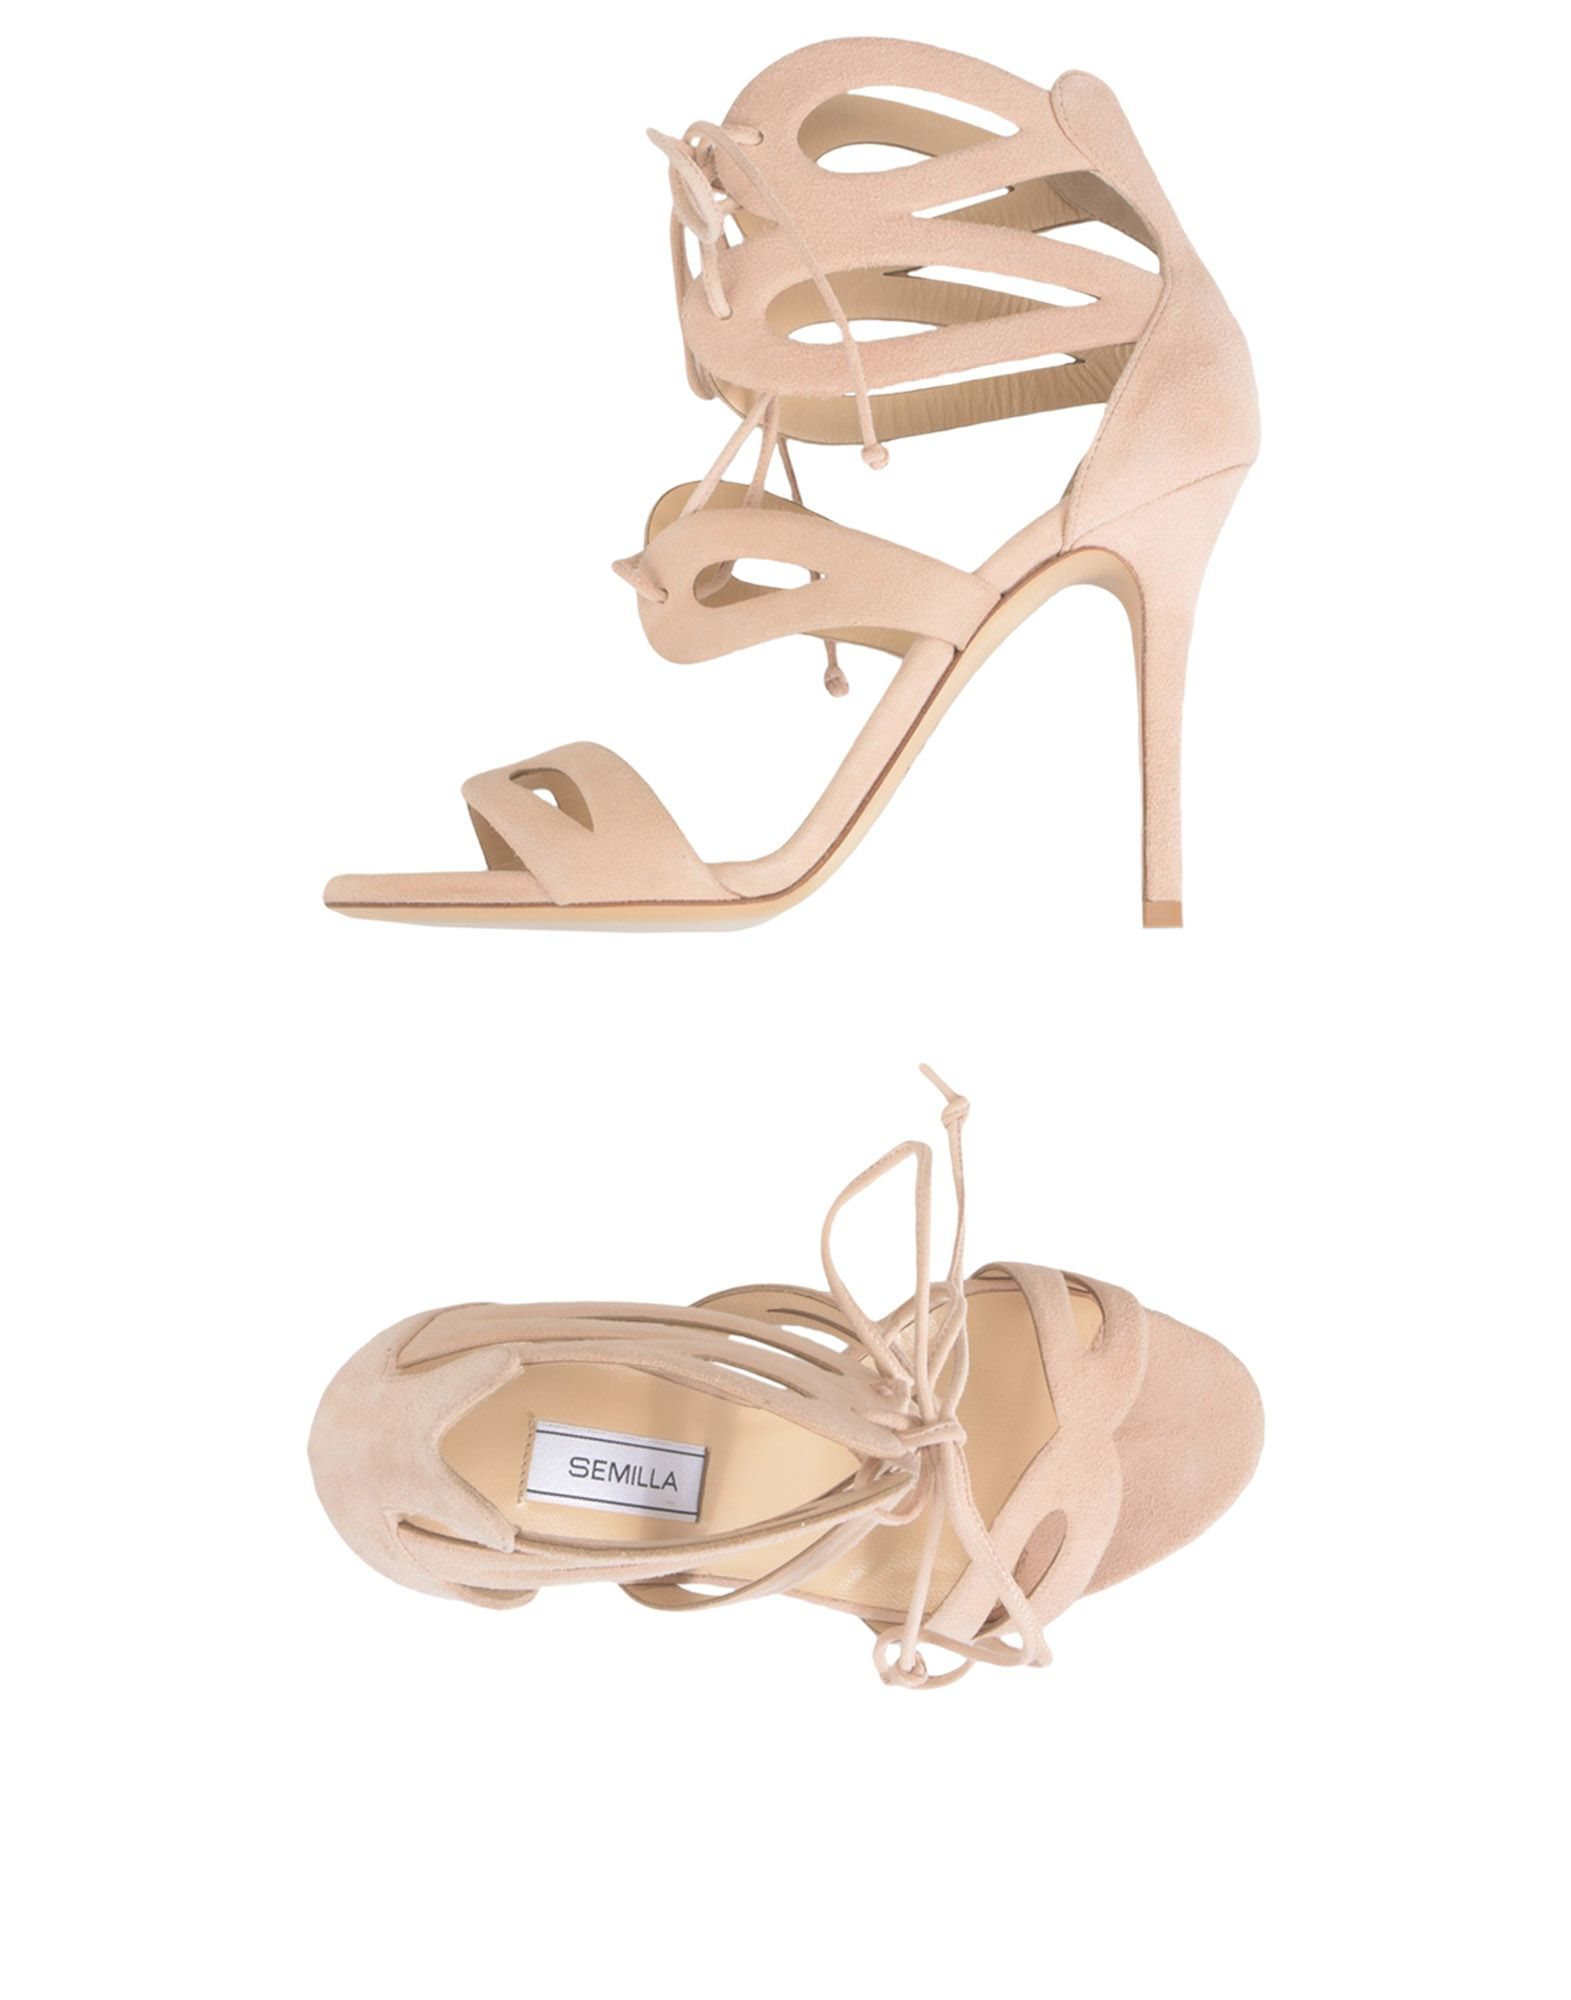 SEMILLA Sandals in Pale Pink